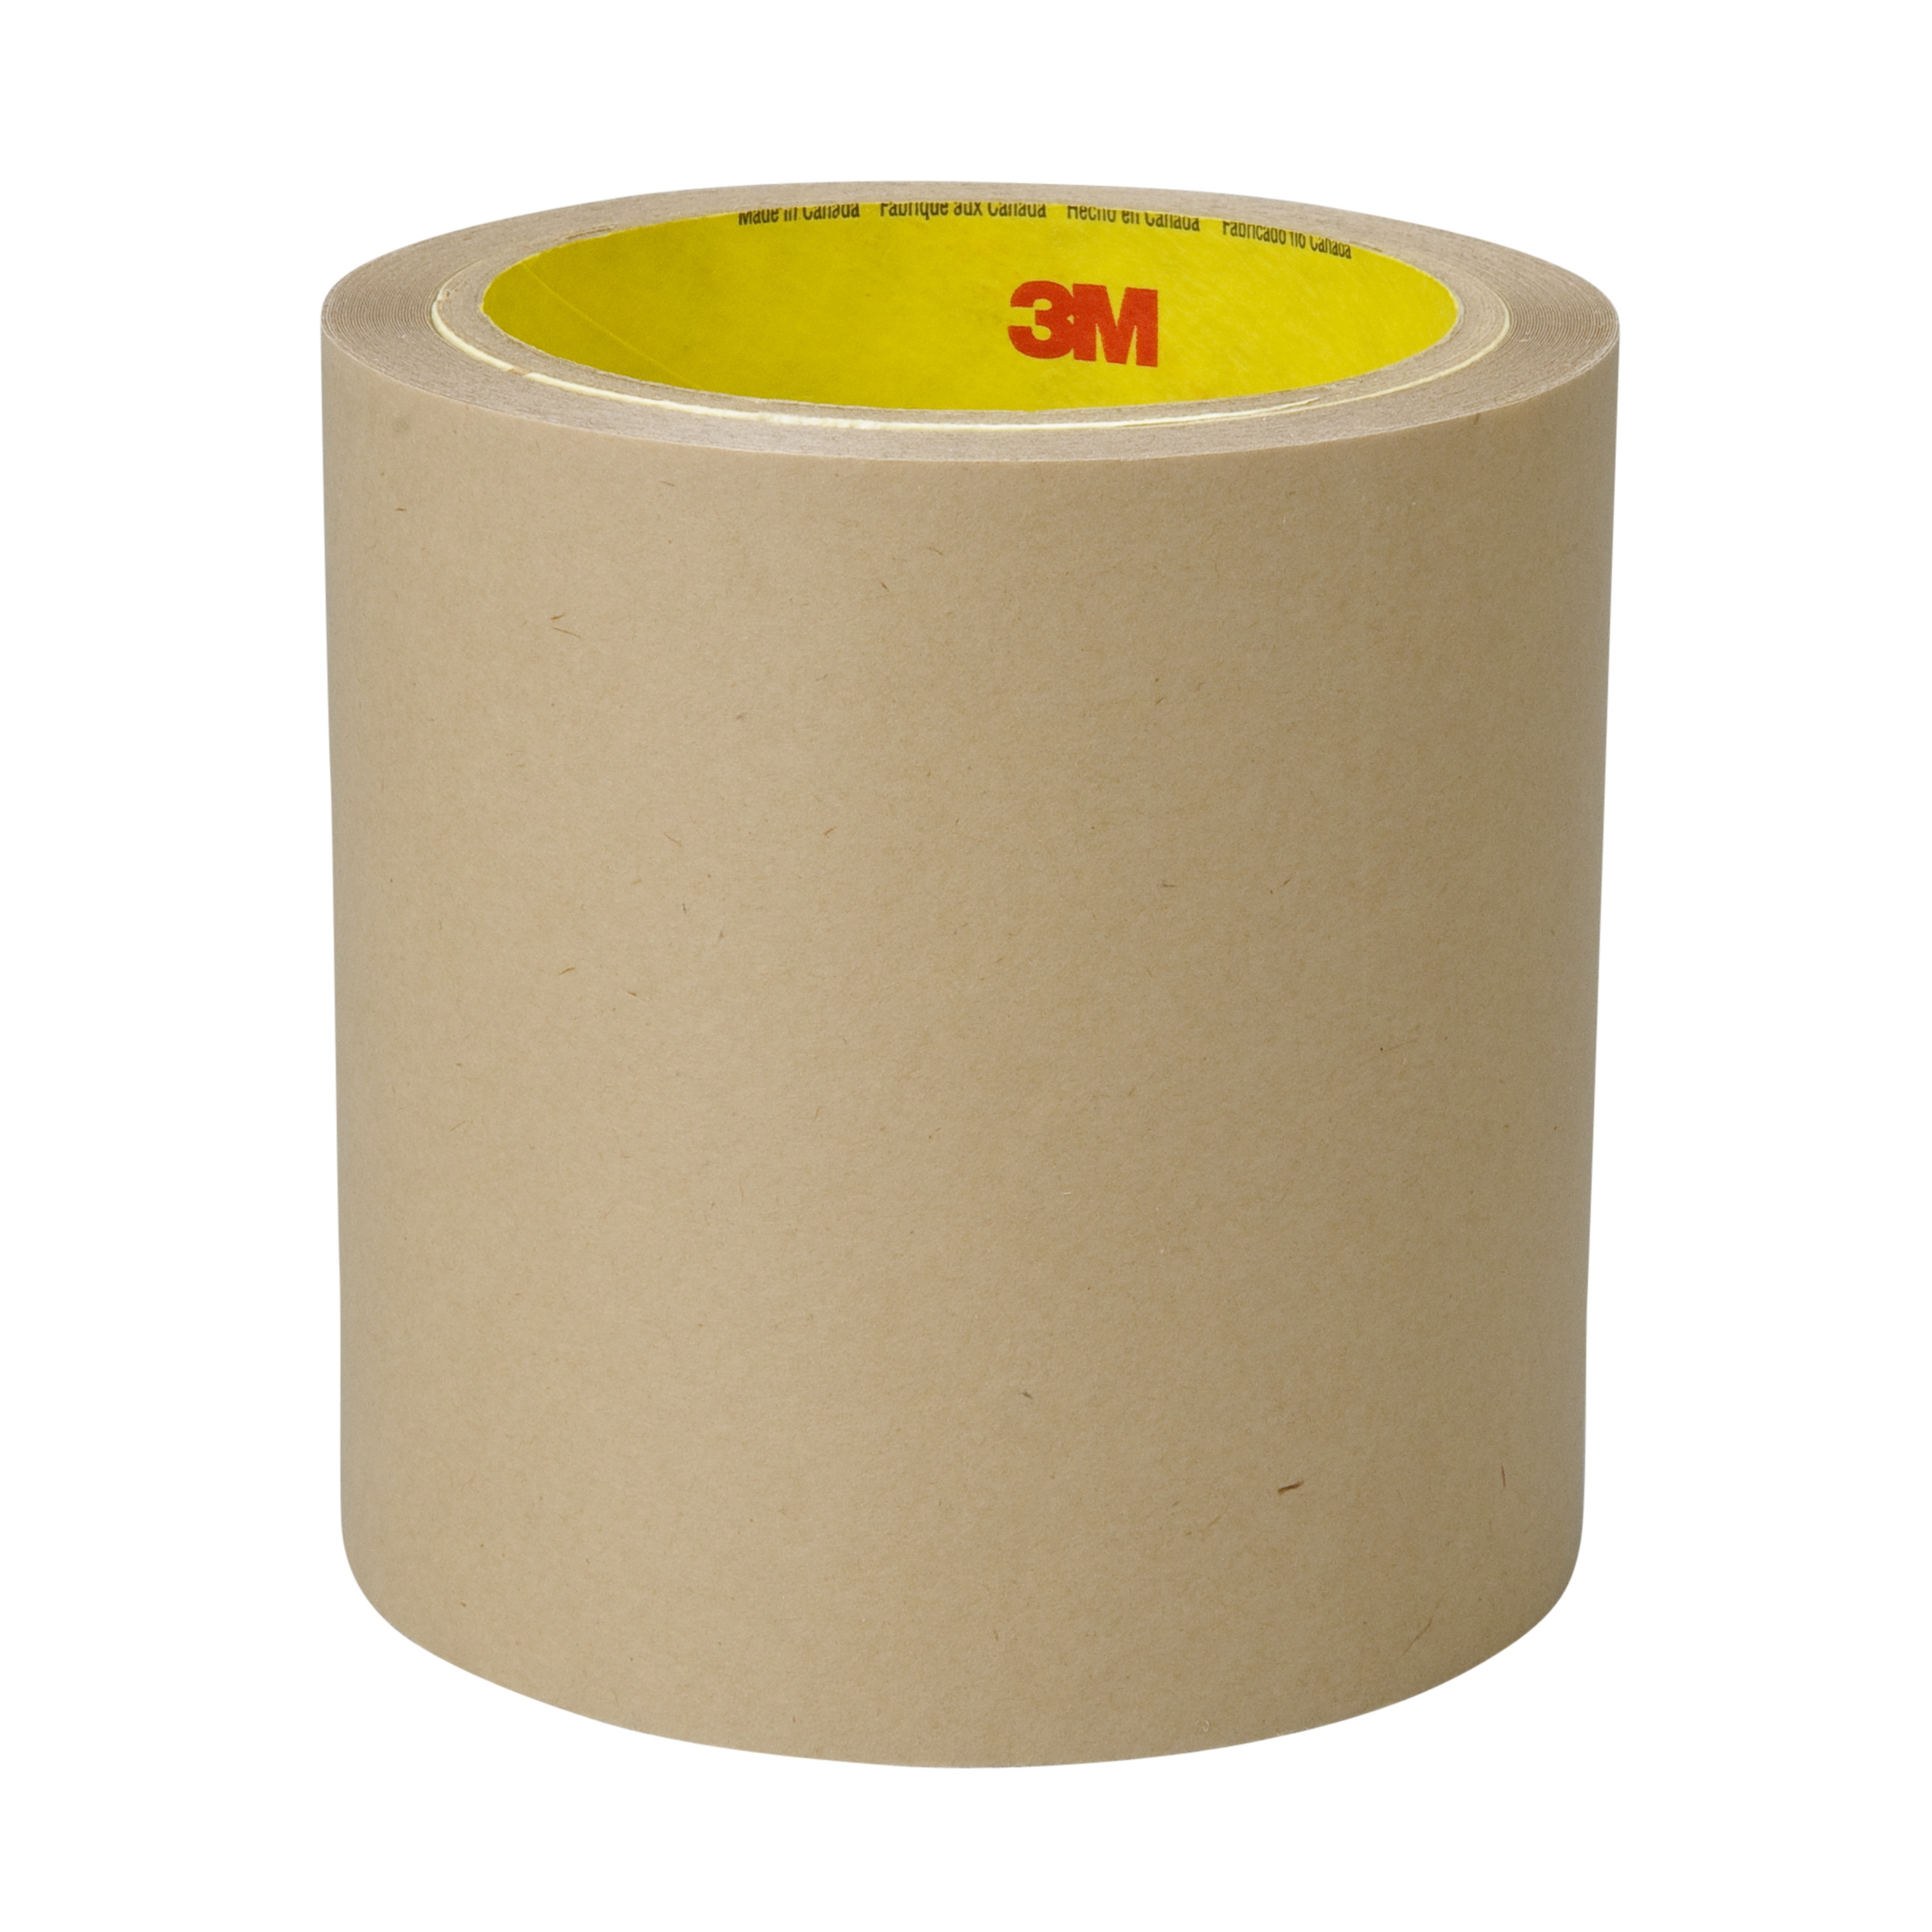 3M™ Double Coated Tape 9500PC, Clear, 5.6 mil, Roll, Config